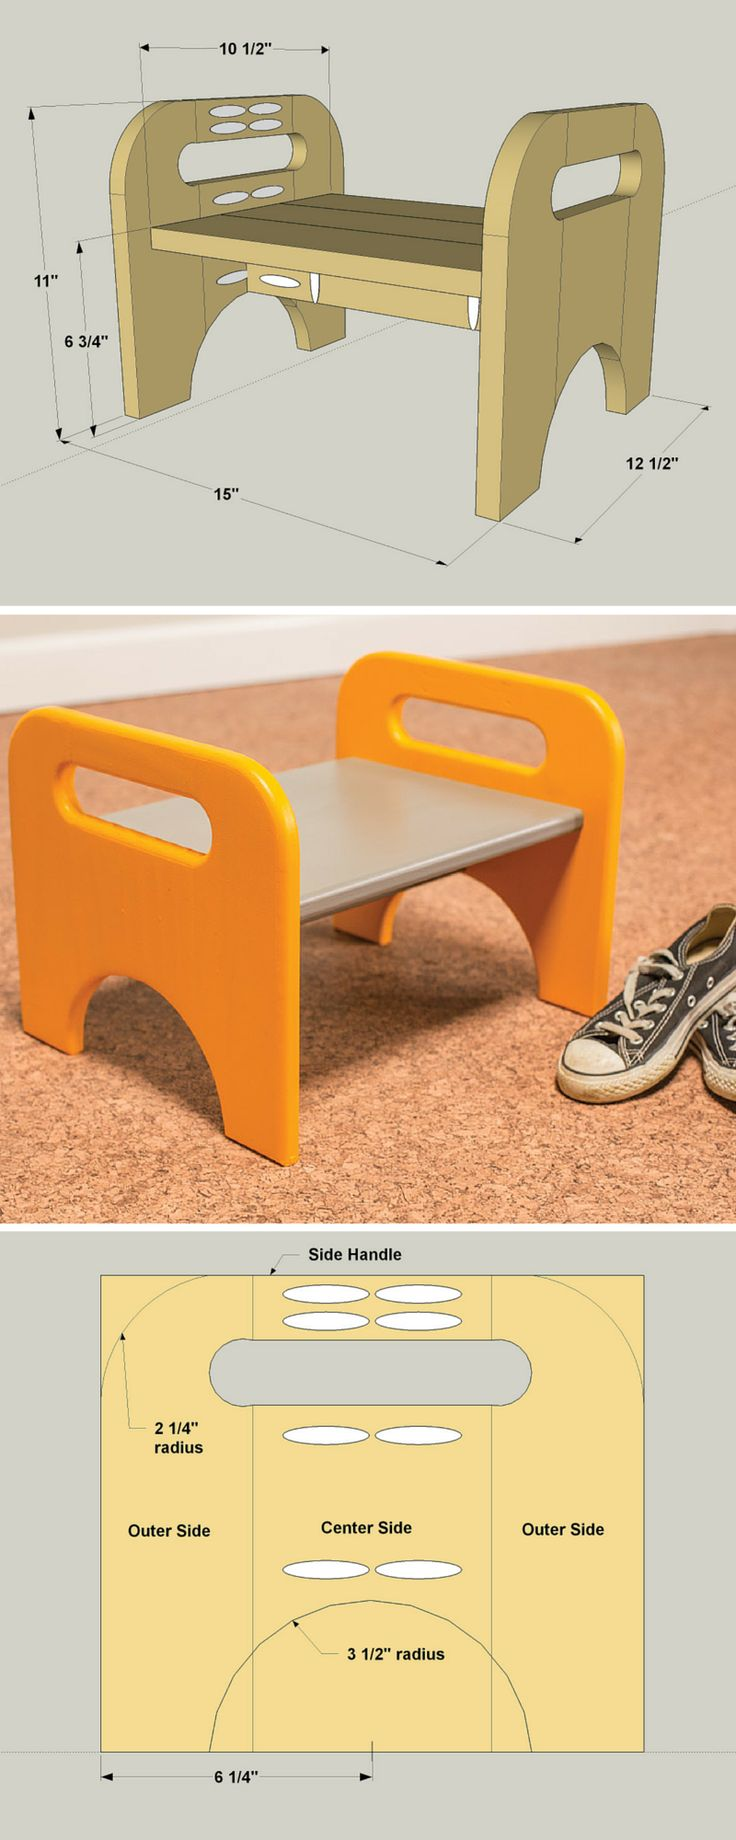 This step stool is a great way to help kids get a little extra height for those times when they want to help out in the kitchen, or when they need to reach a shelf. It's also a great place to perch while putting on shoes. You'll have fun building the step stool, and kids will have fun using it. Get the free DIY plans at buildsomething.com